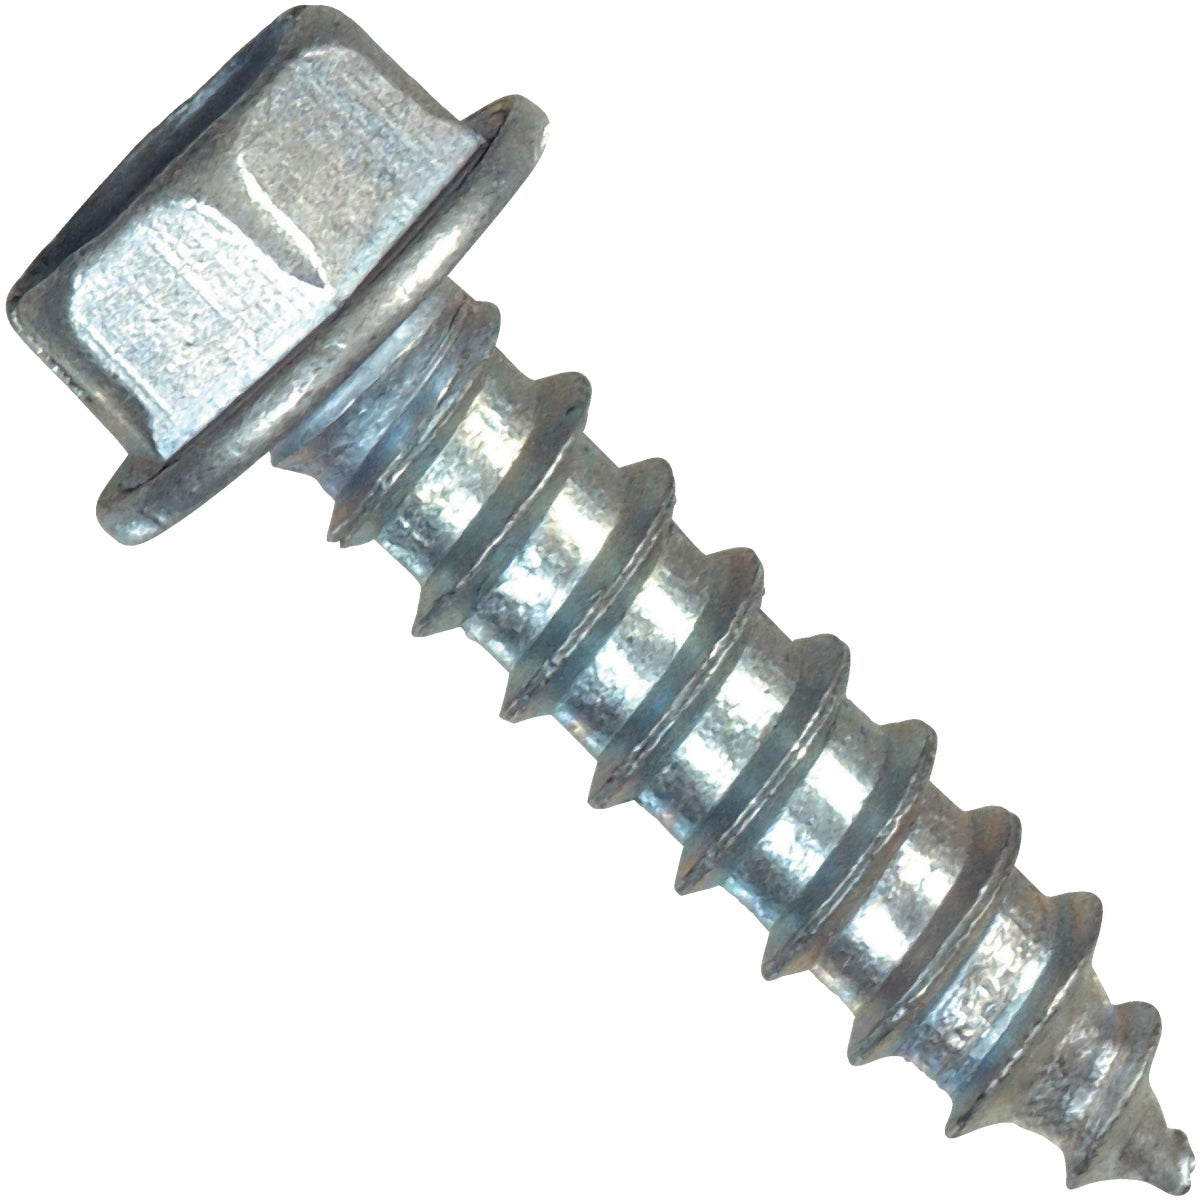 6X5/8 SHT METAL SCREW - 70251 by Hillman Fastener